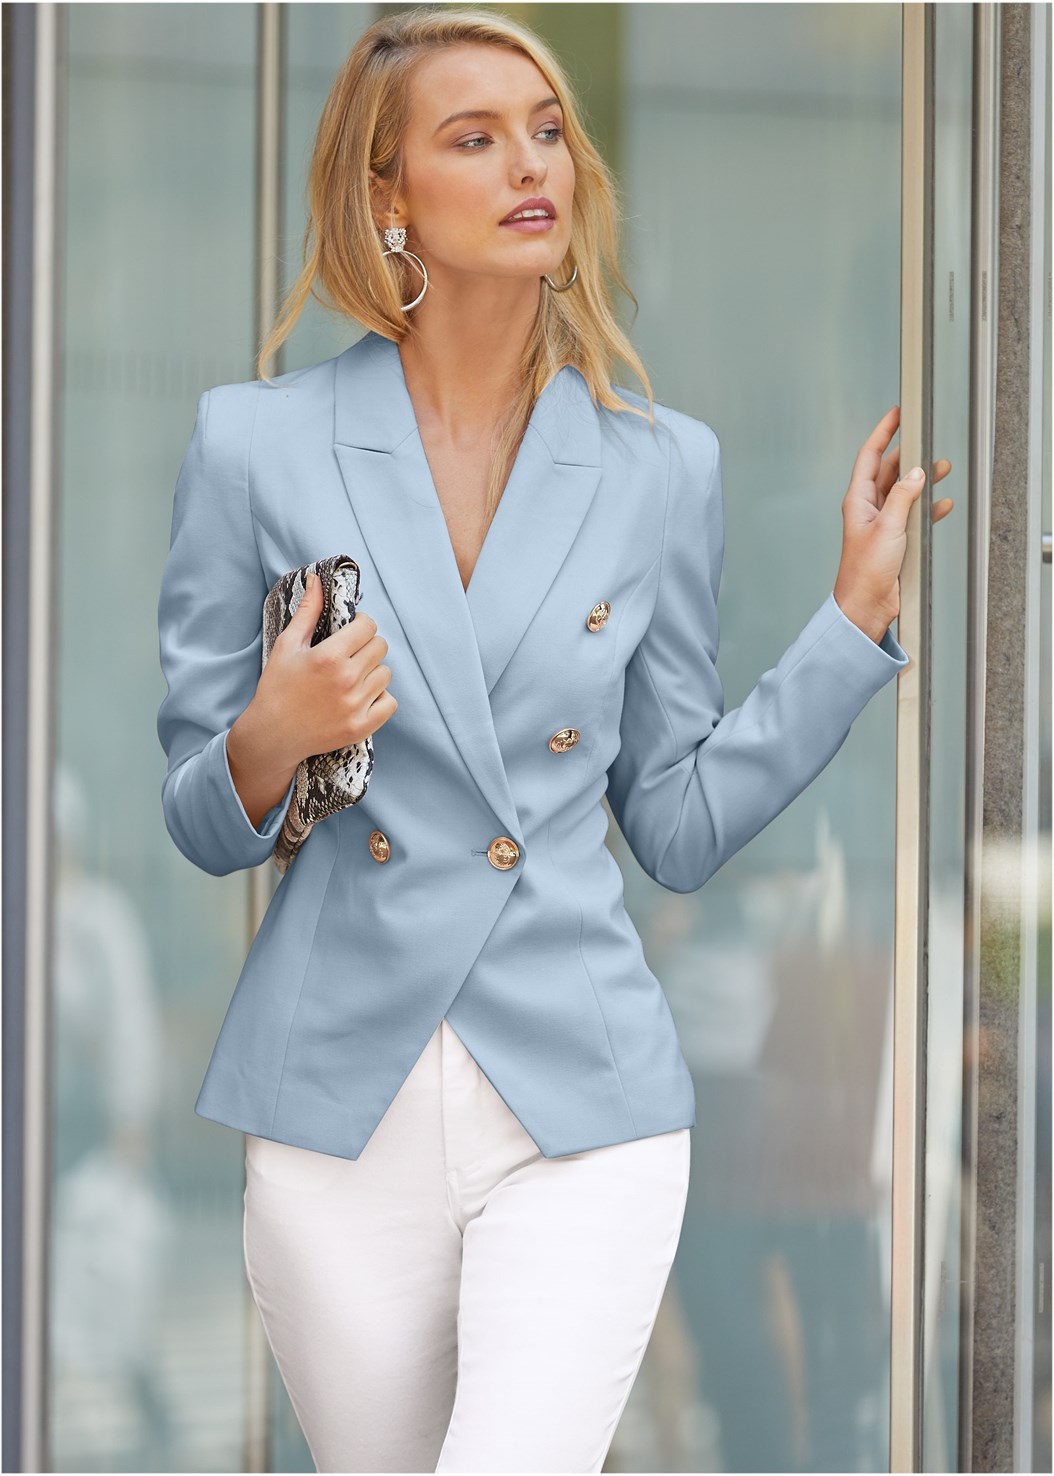 Double Breasted Blazer,Mid Rise Color Skinny Jeans,Tiger Detail Earrings,Python Clutch